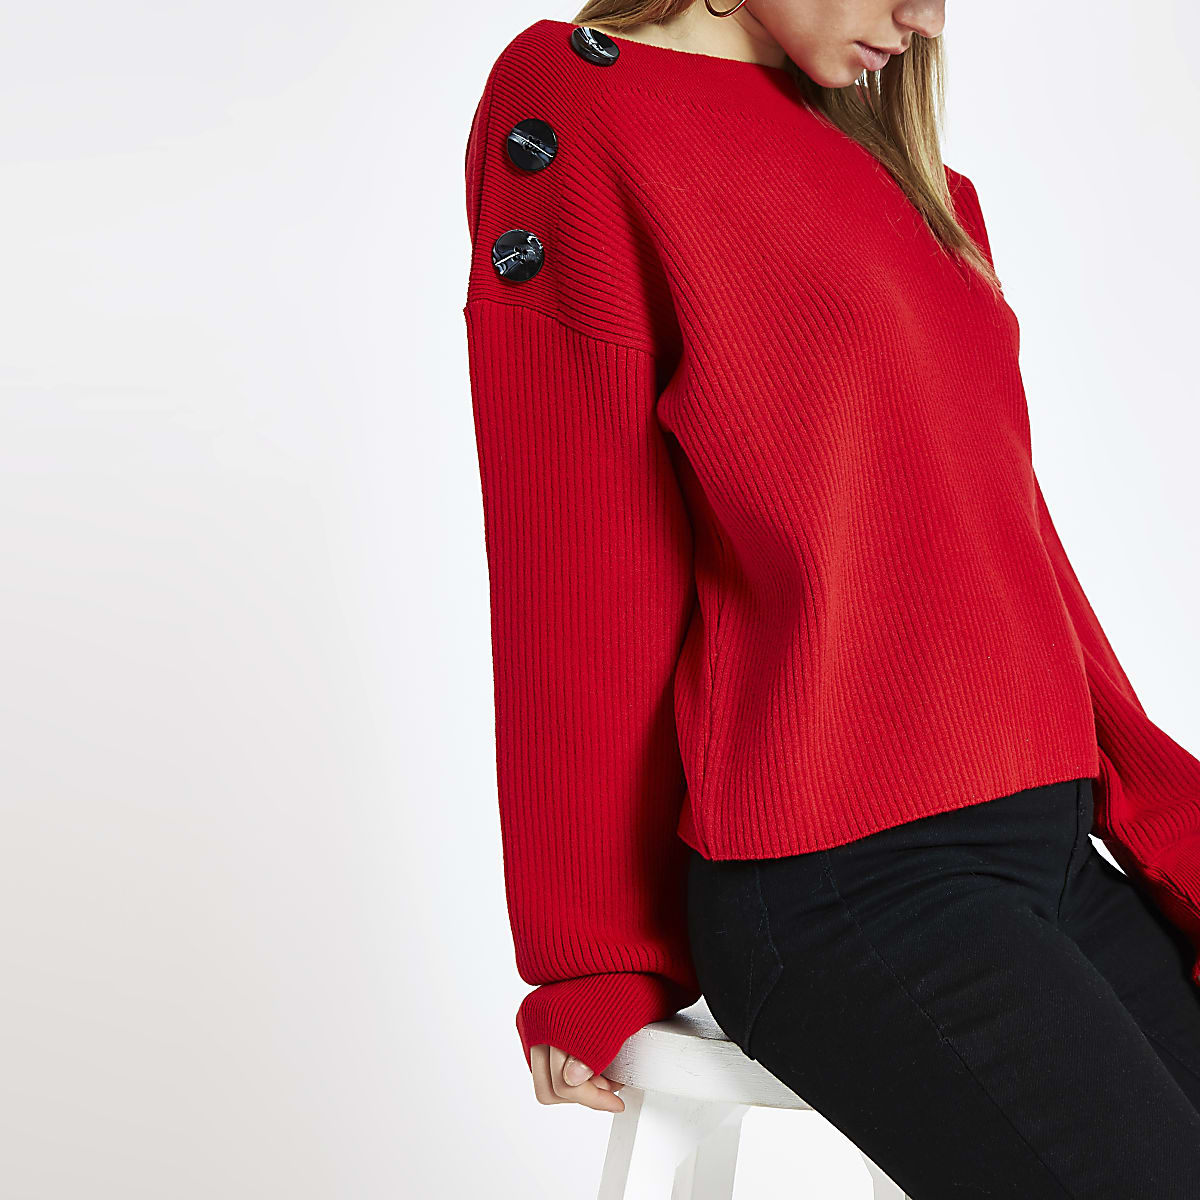 Red knit boat neck button sweater